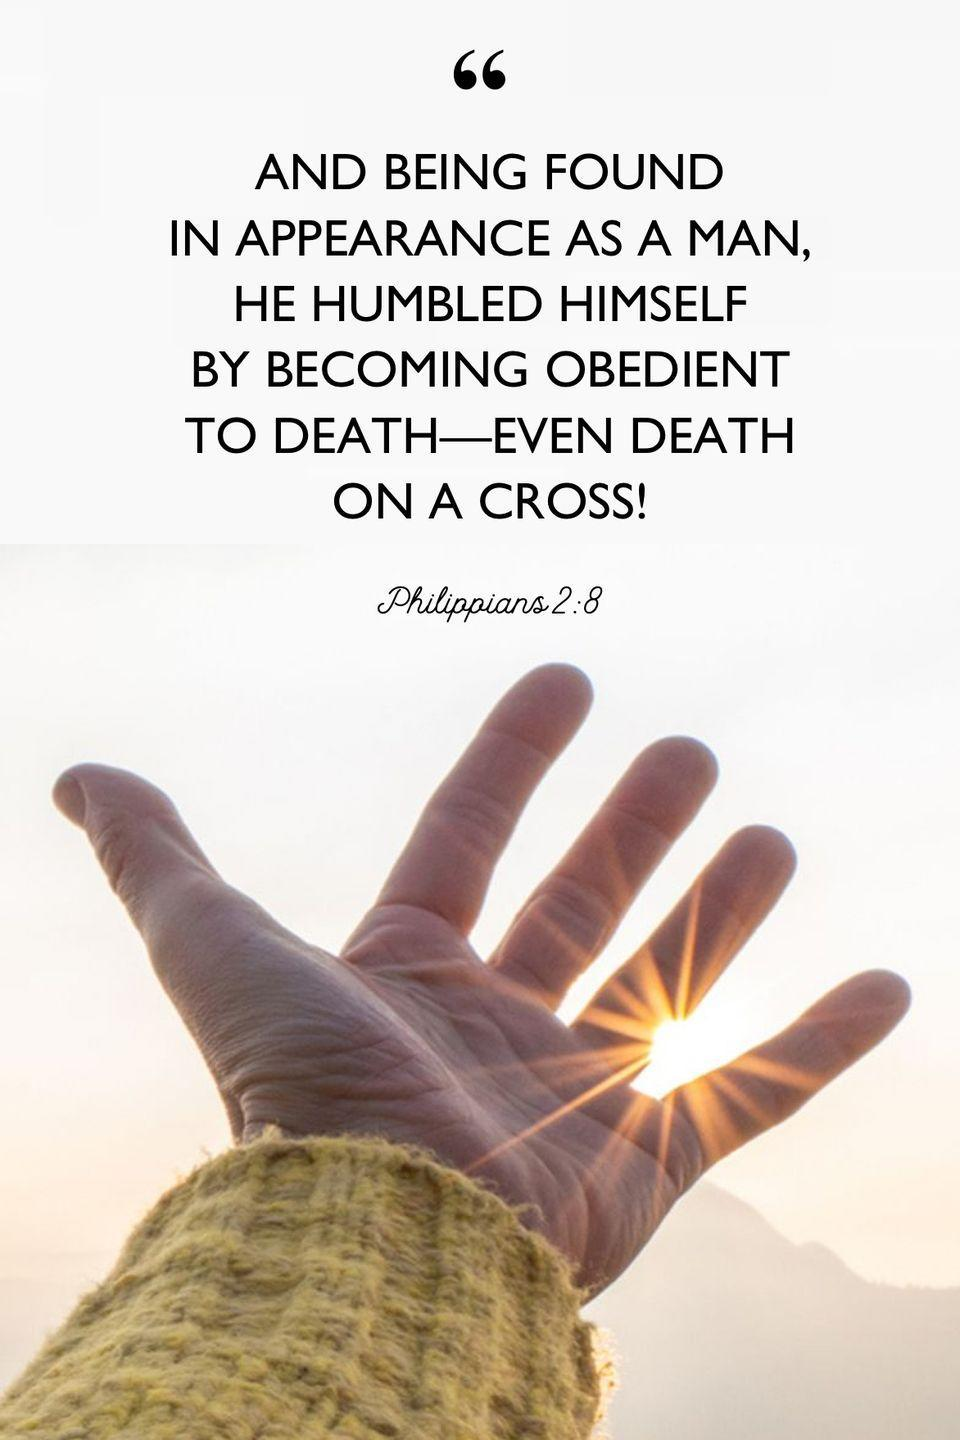 """<p>""""And being found in appearance as a man, he humbled himself by becoming obedient to death—even death on a cross!""""</p>"""